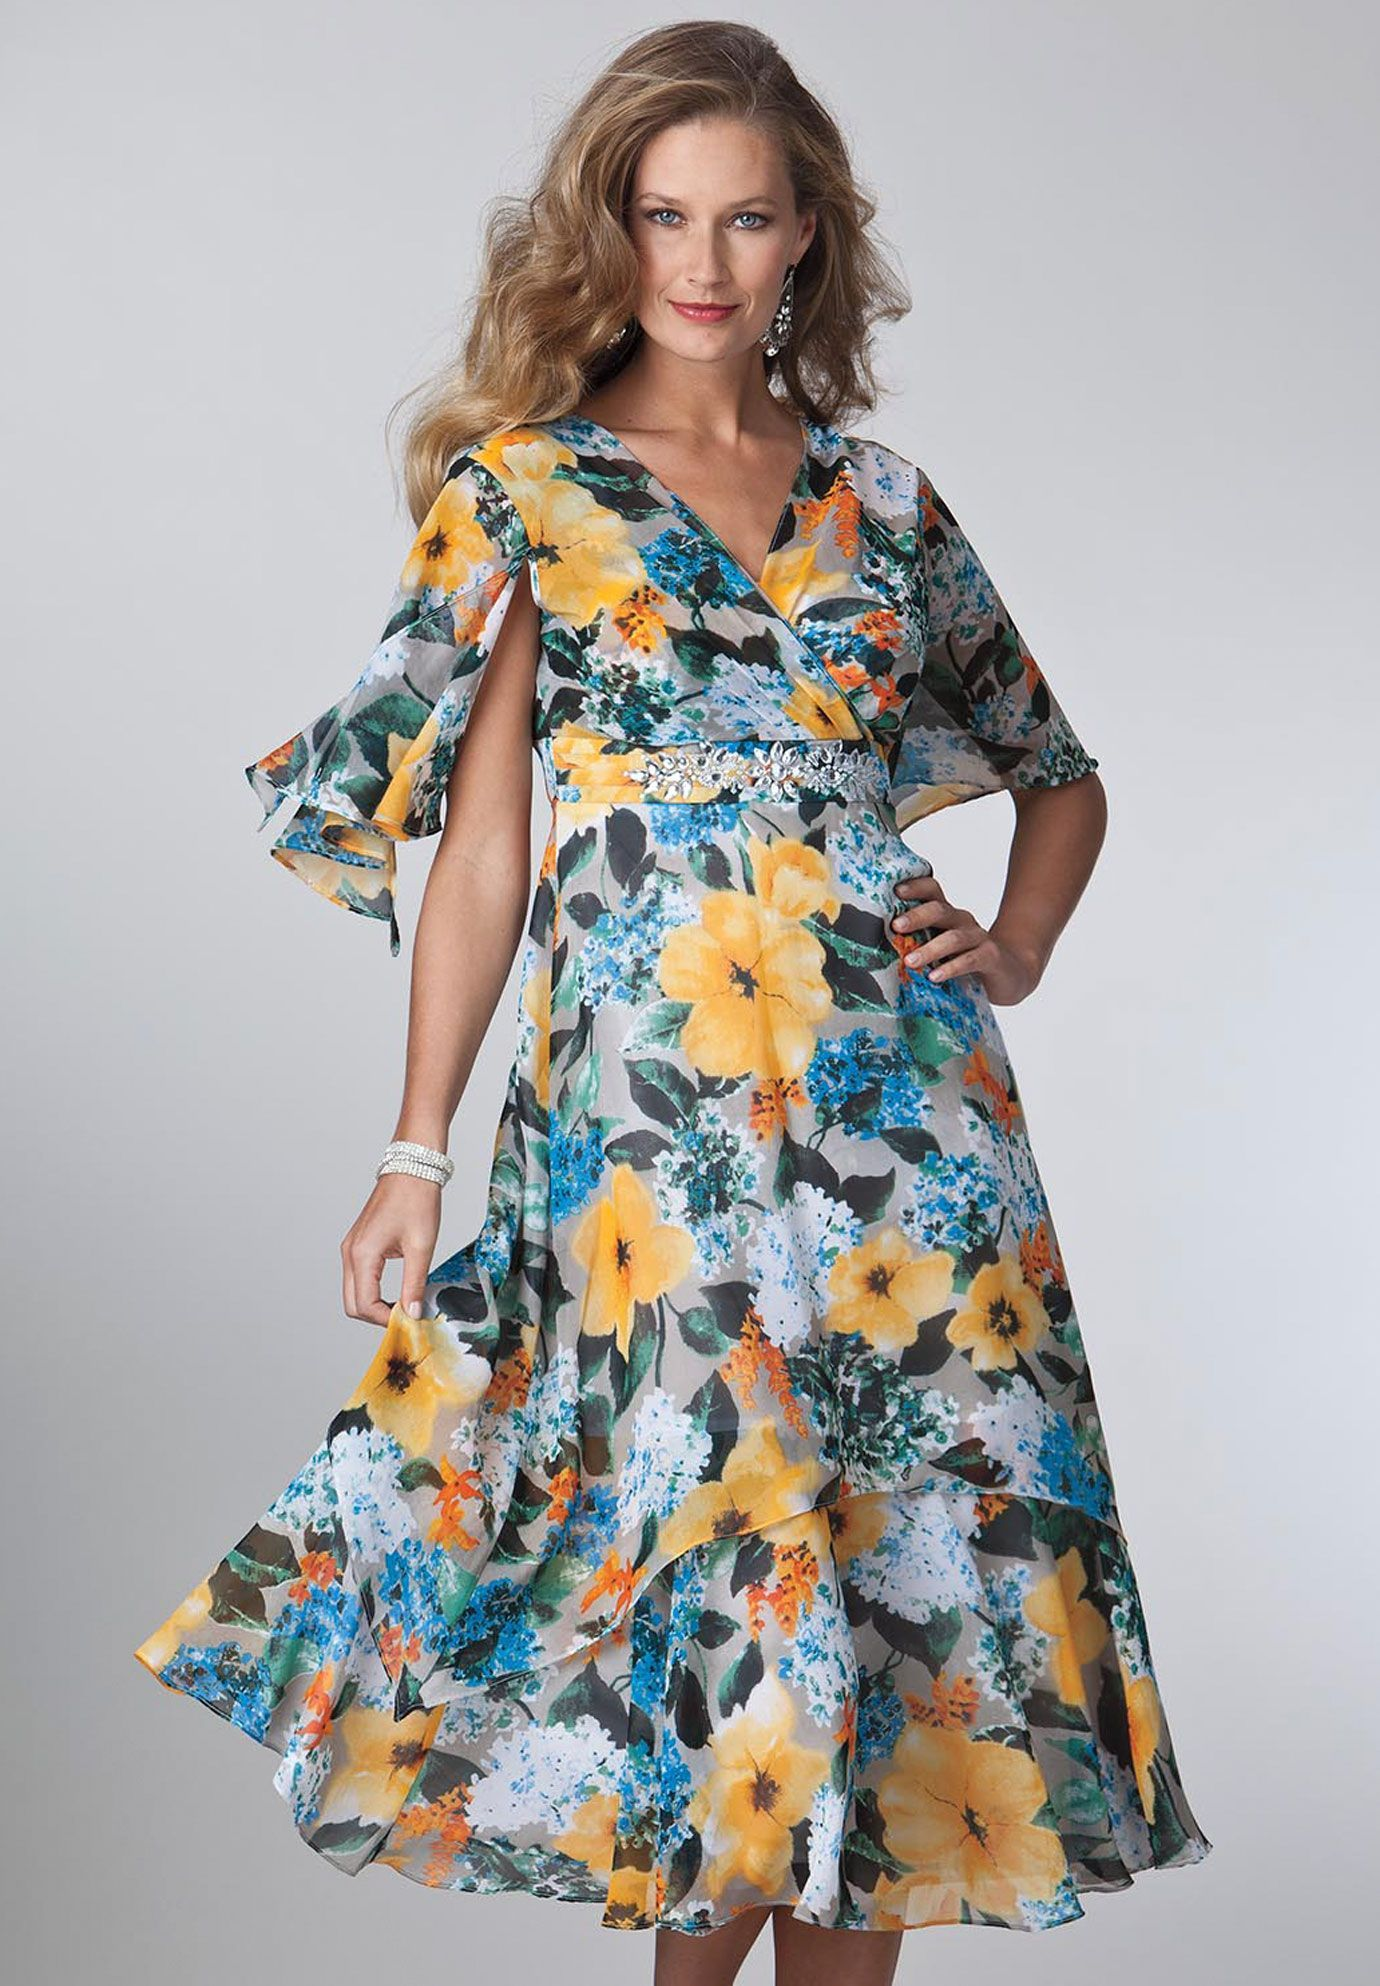 Plus Size Dress In Floral Print With Empire Waist Plus Size